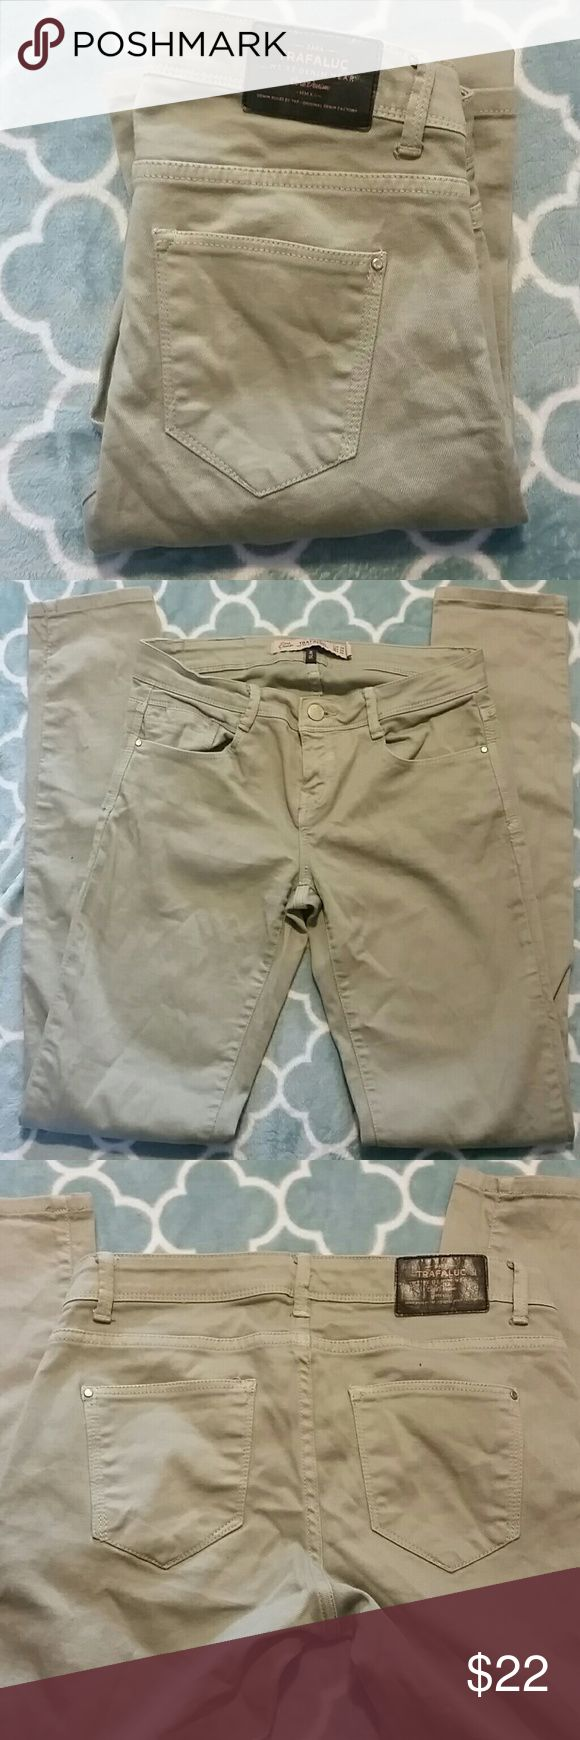 """Zara Trafaluc Denim Olive Skinny Jeans Size 4 Zara Trafaluc Slim Denim - Skinny Jeans - Olive green color. Size 4. Good used condition.  Inseam approx 32"""" Waist approx 28"""" Front rise approx 7.5"""" Leg opening approx 5"""" across Zara Jeans Skinny"""